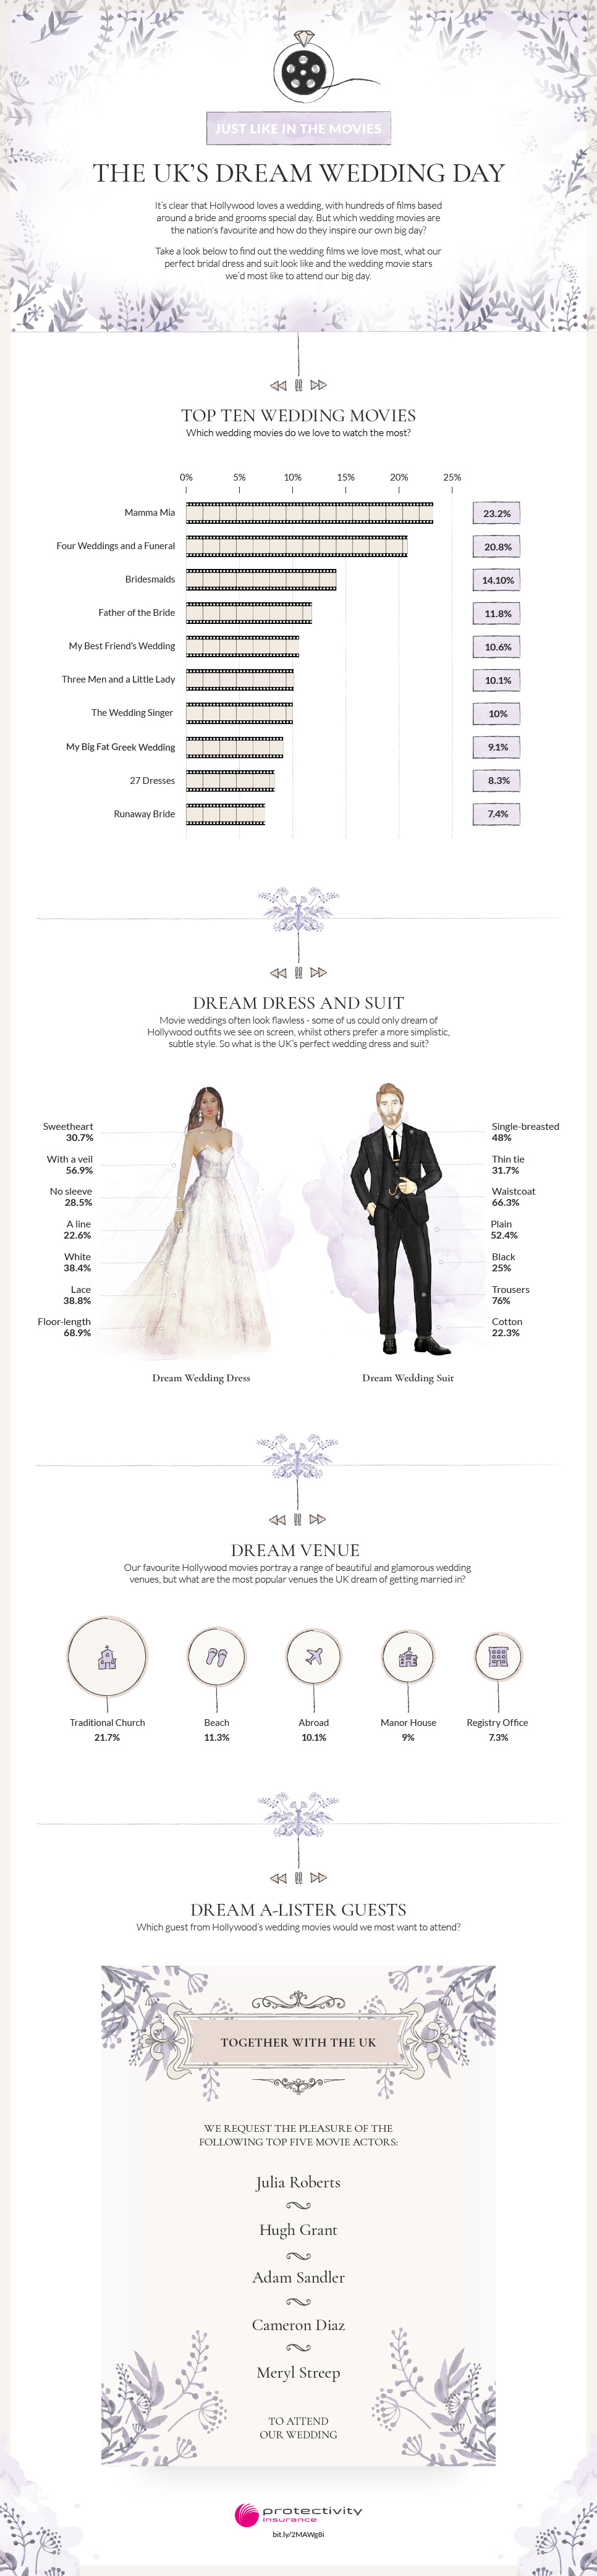 Dream Wedding Infographic